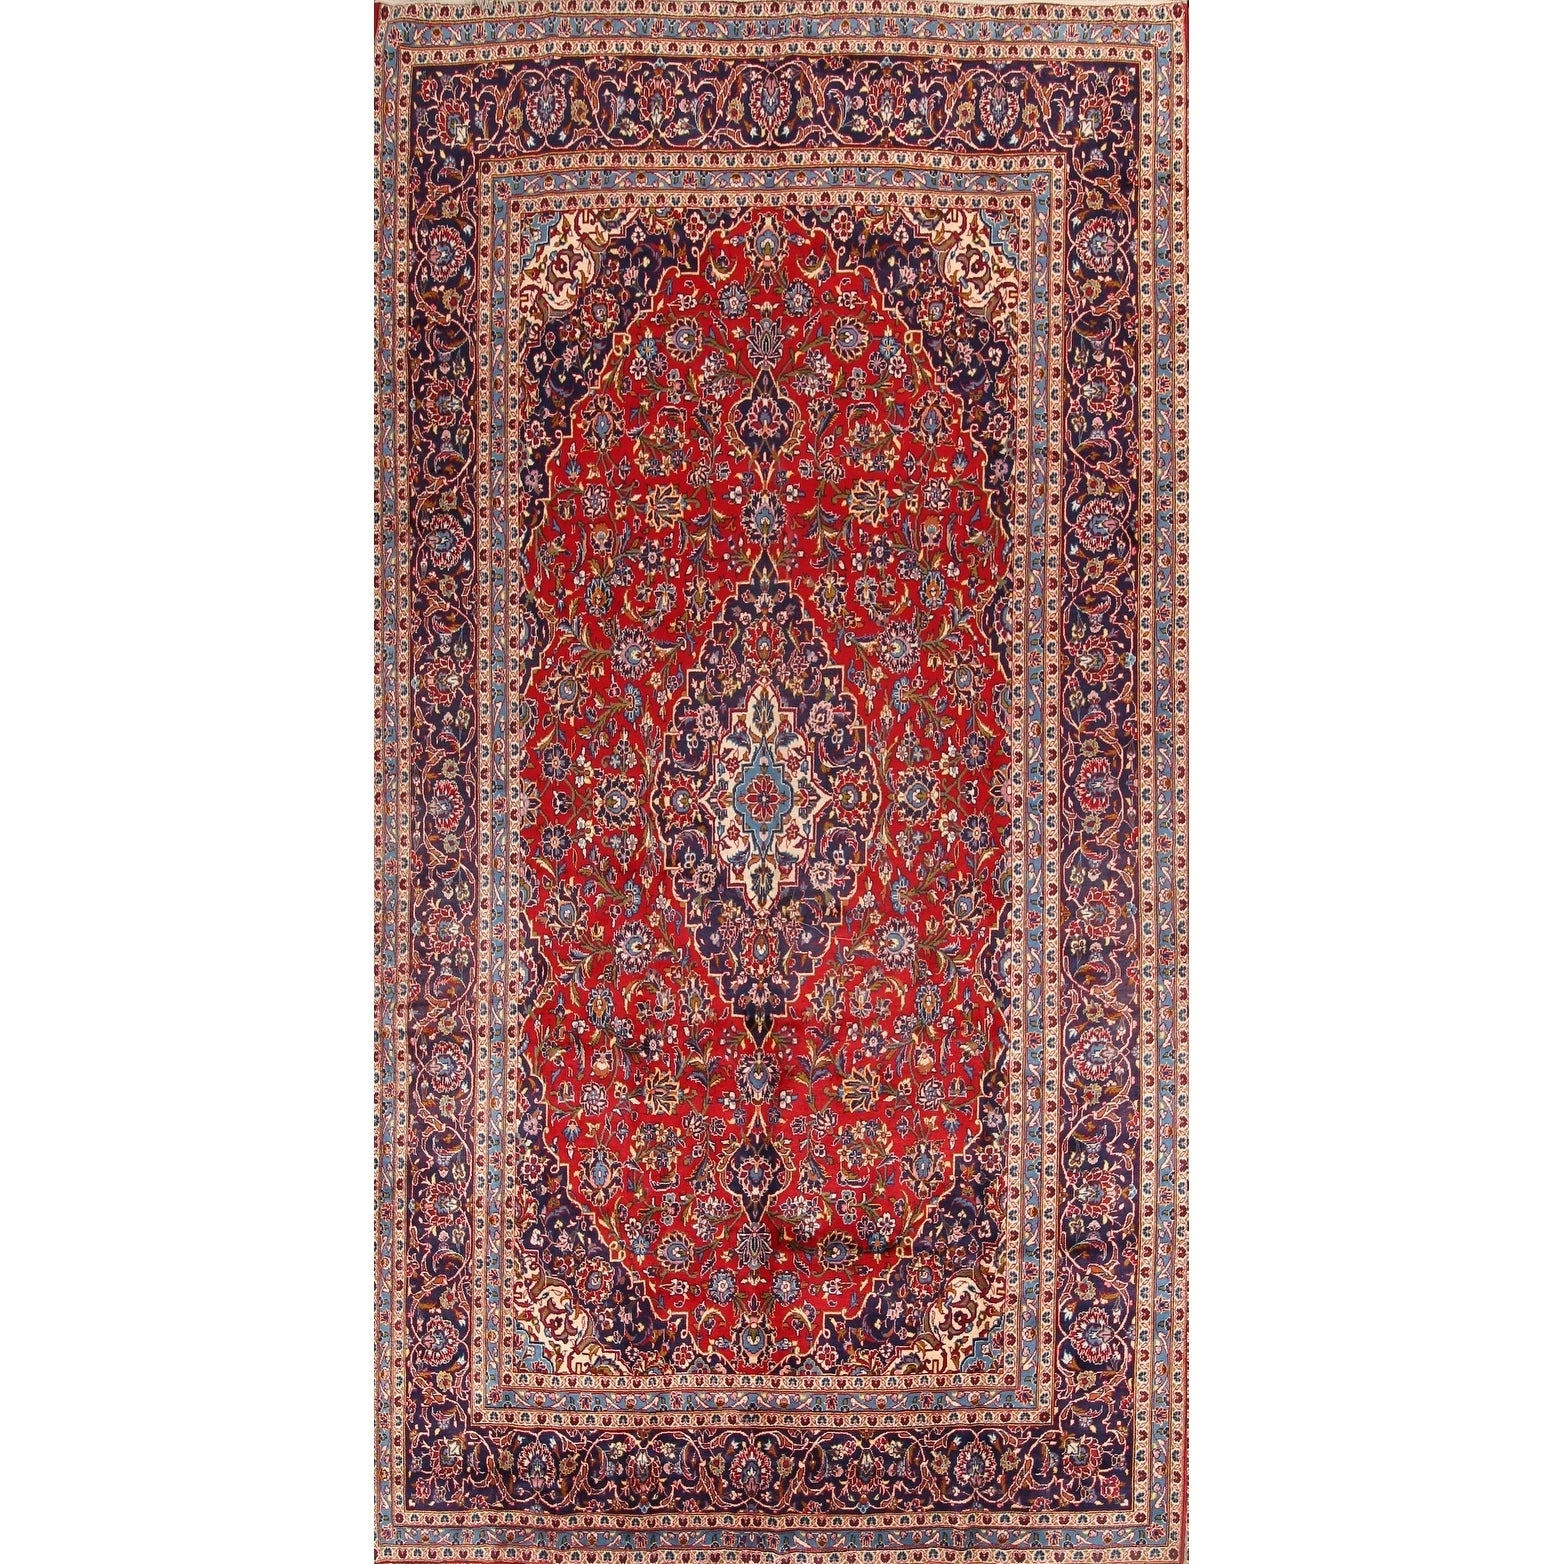 Shop Classical Kashan Medallion Hand Knotted Persian Wool: Hand Knotted Rugs Diy